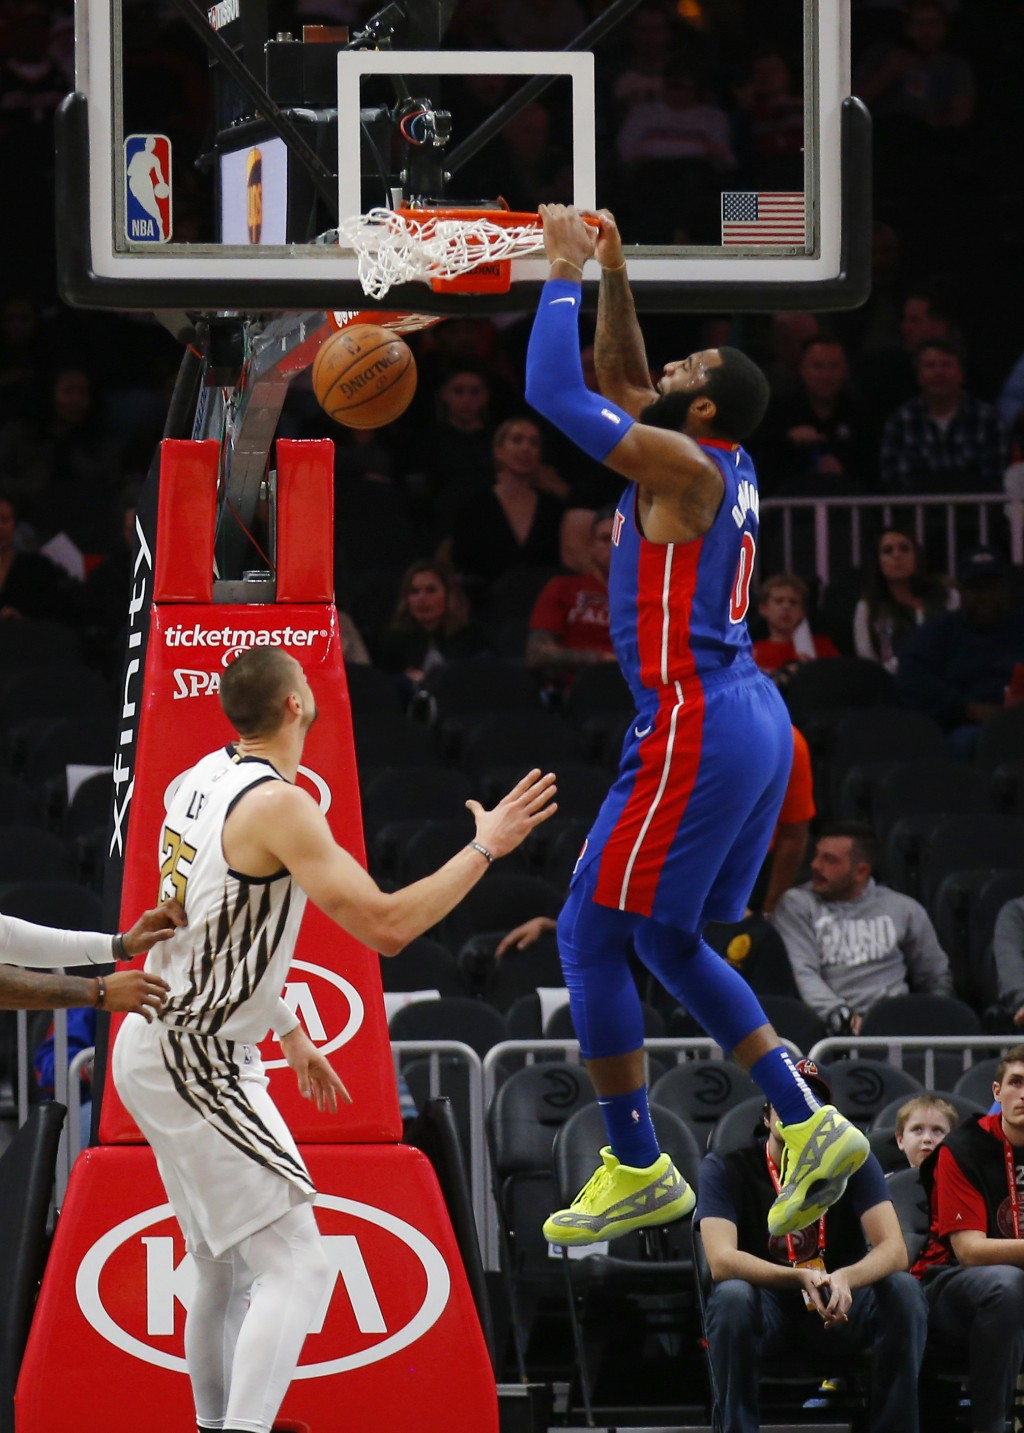 Detroit Pistons center Andre Drummond (0) dunks during the first half of the team's NBA basketball game against the Atlanta Hawks on Friday, Nov. 9, 2